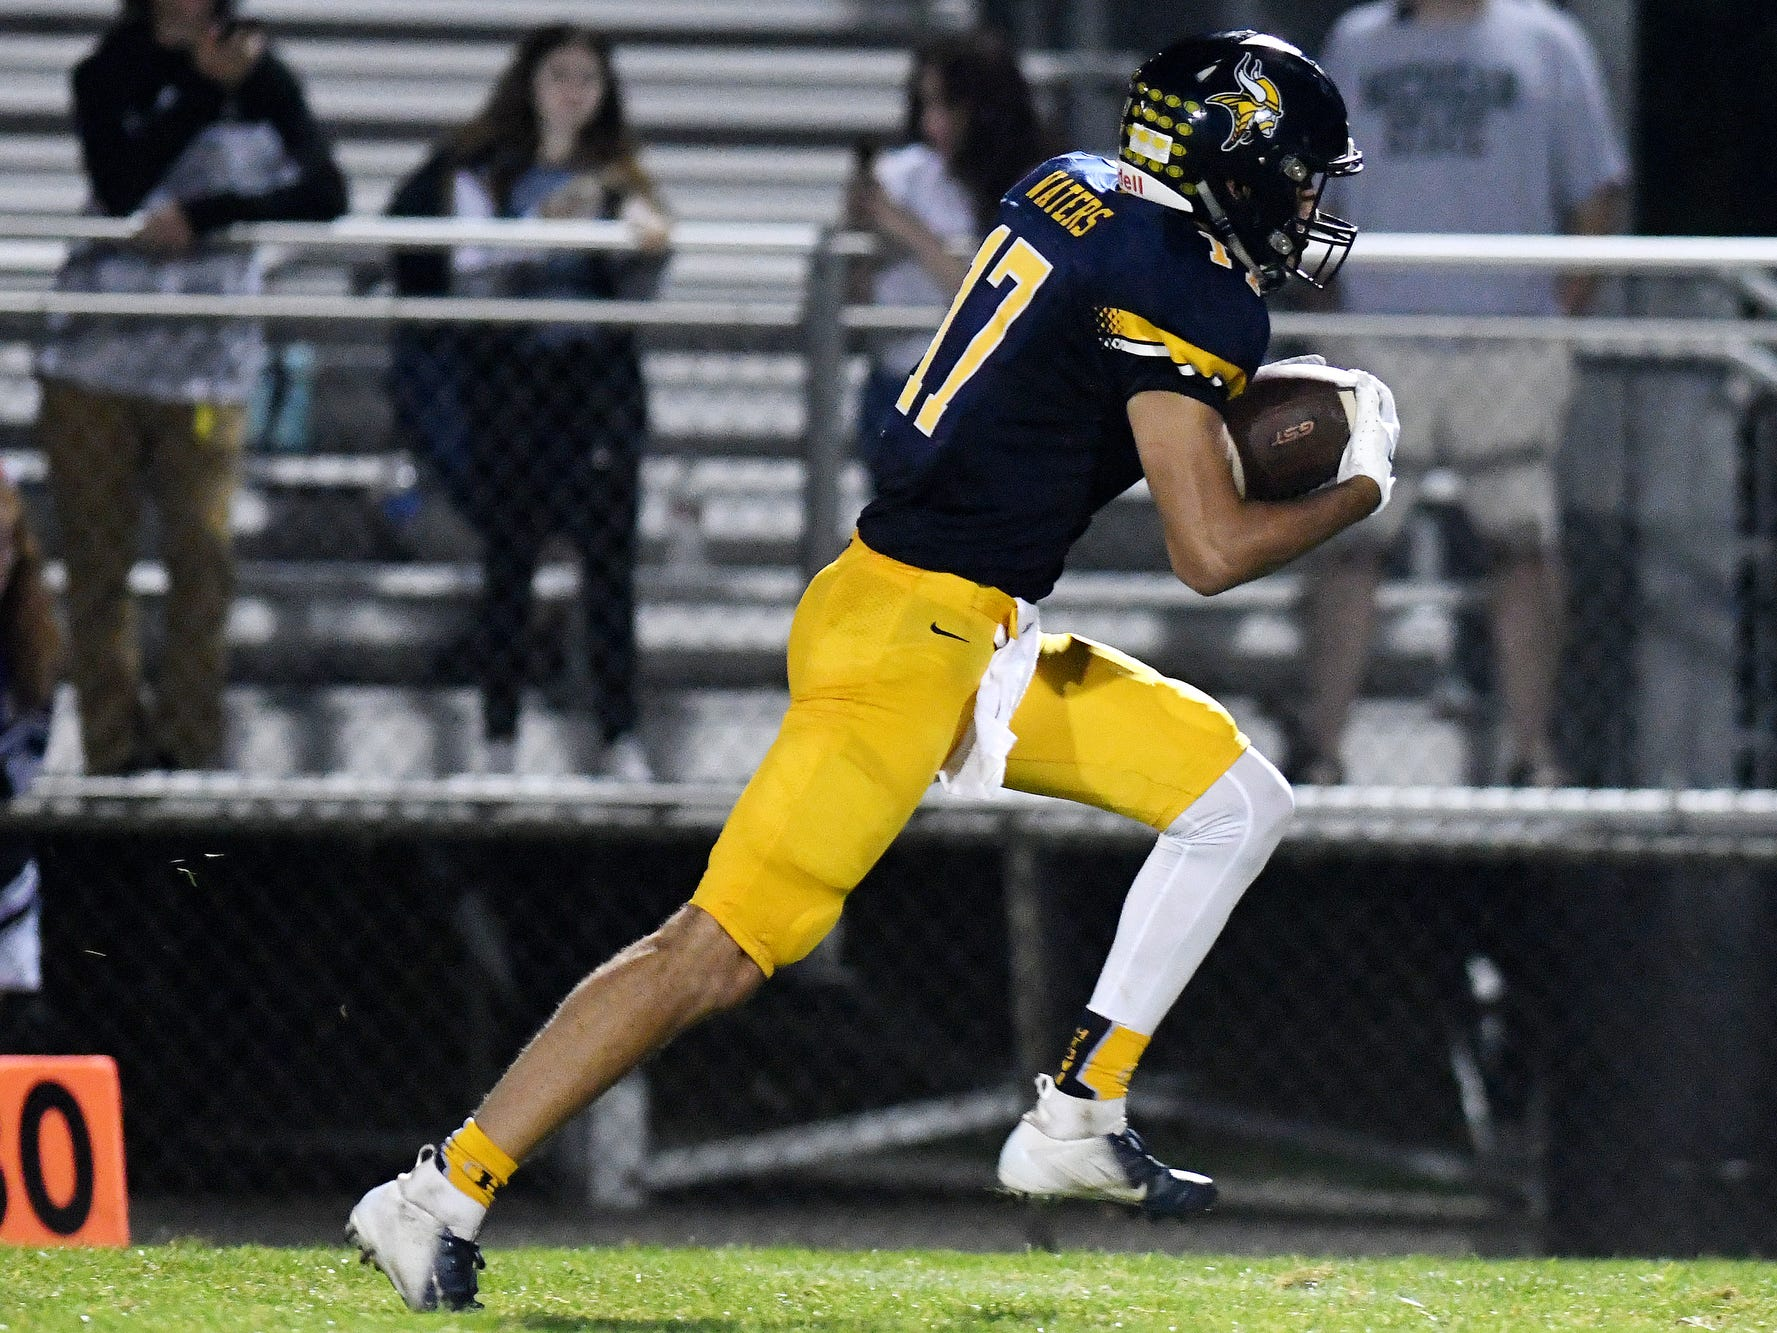 Haslett's Andrew Waters catches a touchdown pass during the third quarter on Friday, Sept. 14, 2018, at Haslett High School.